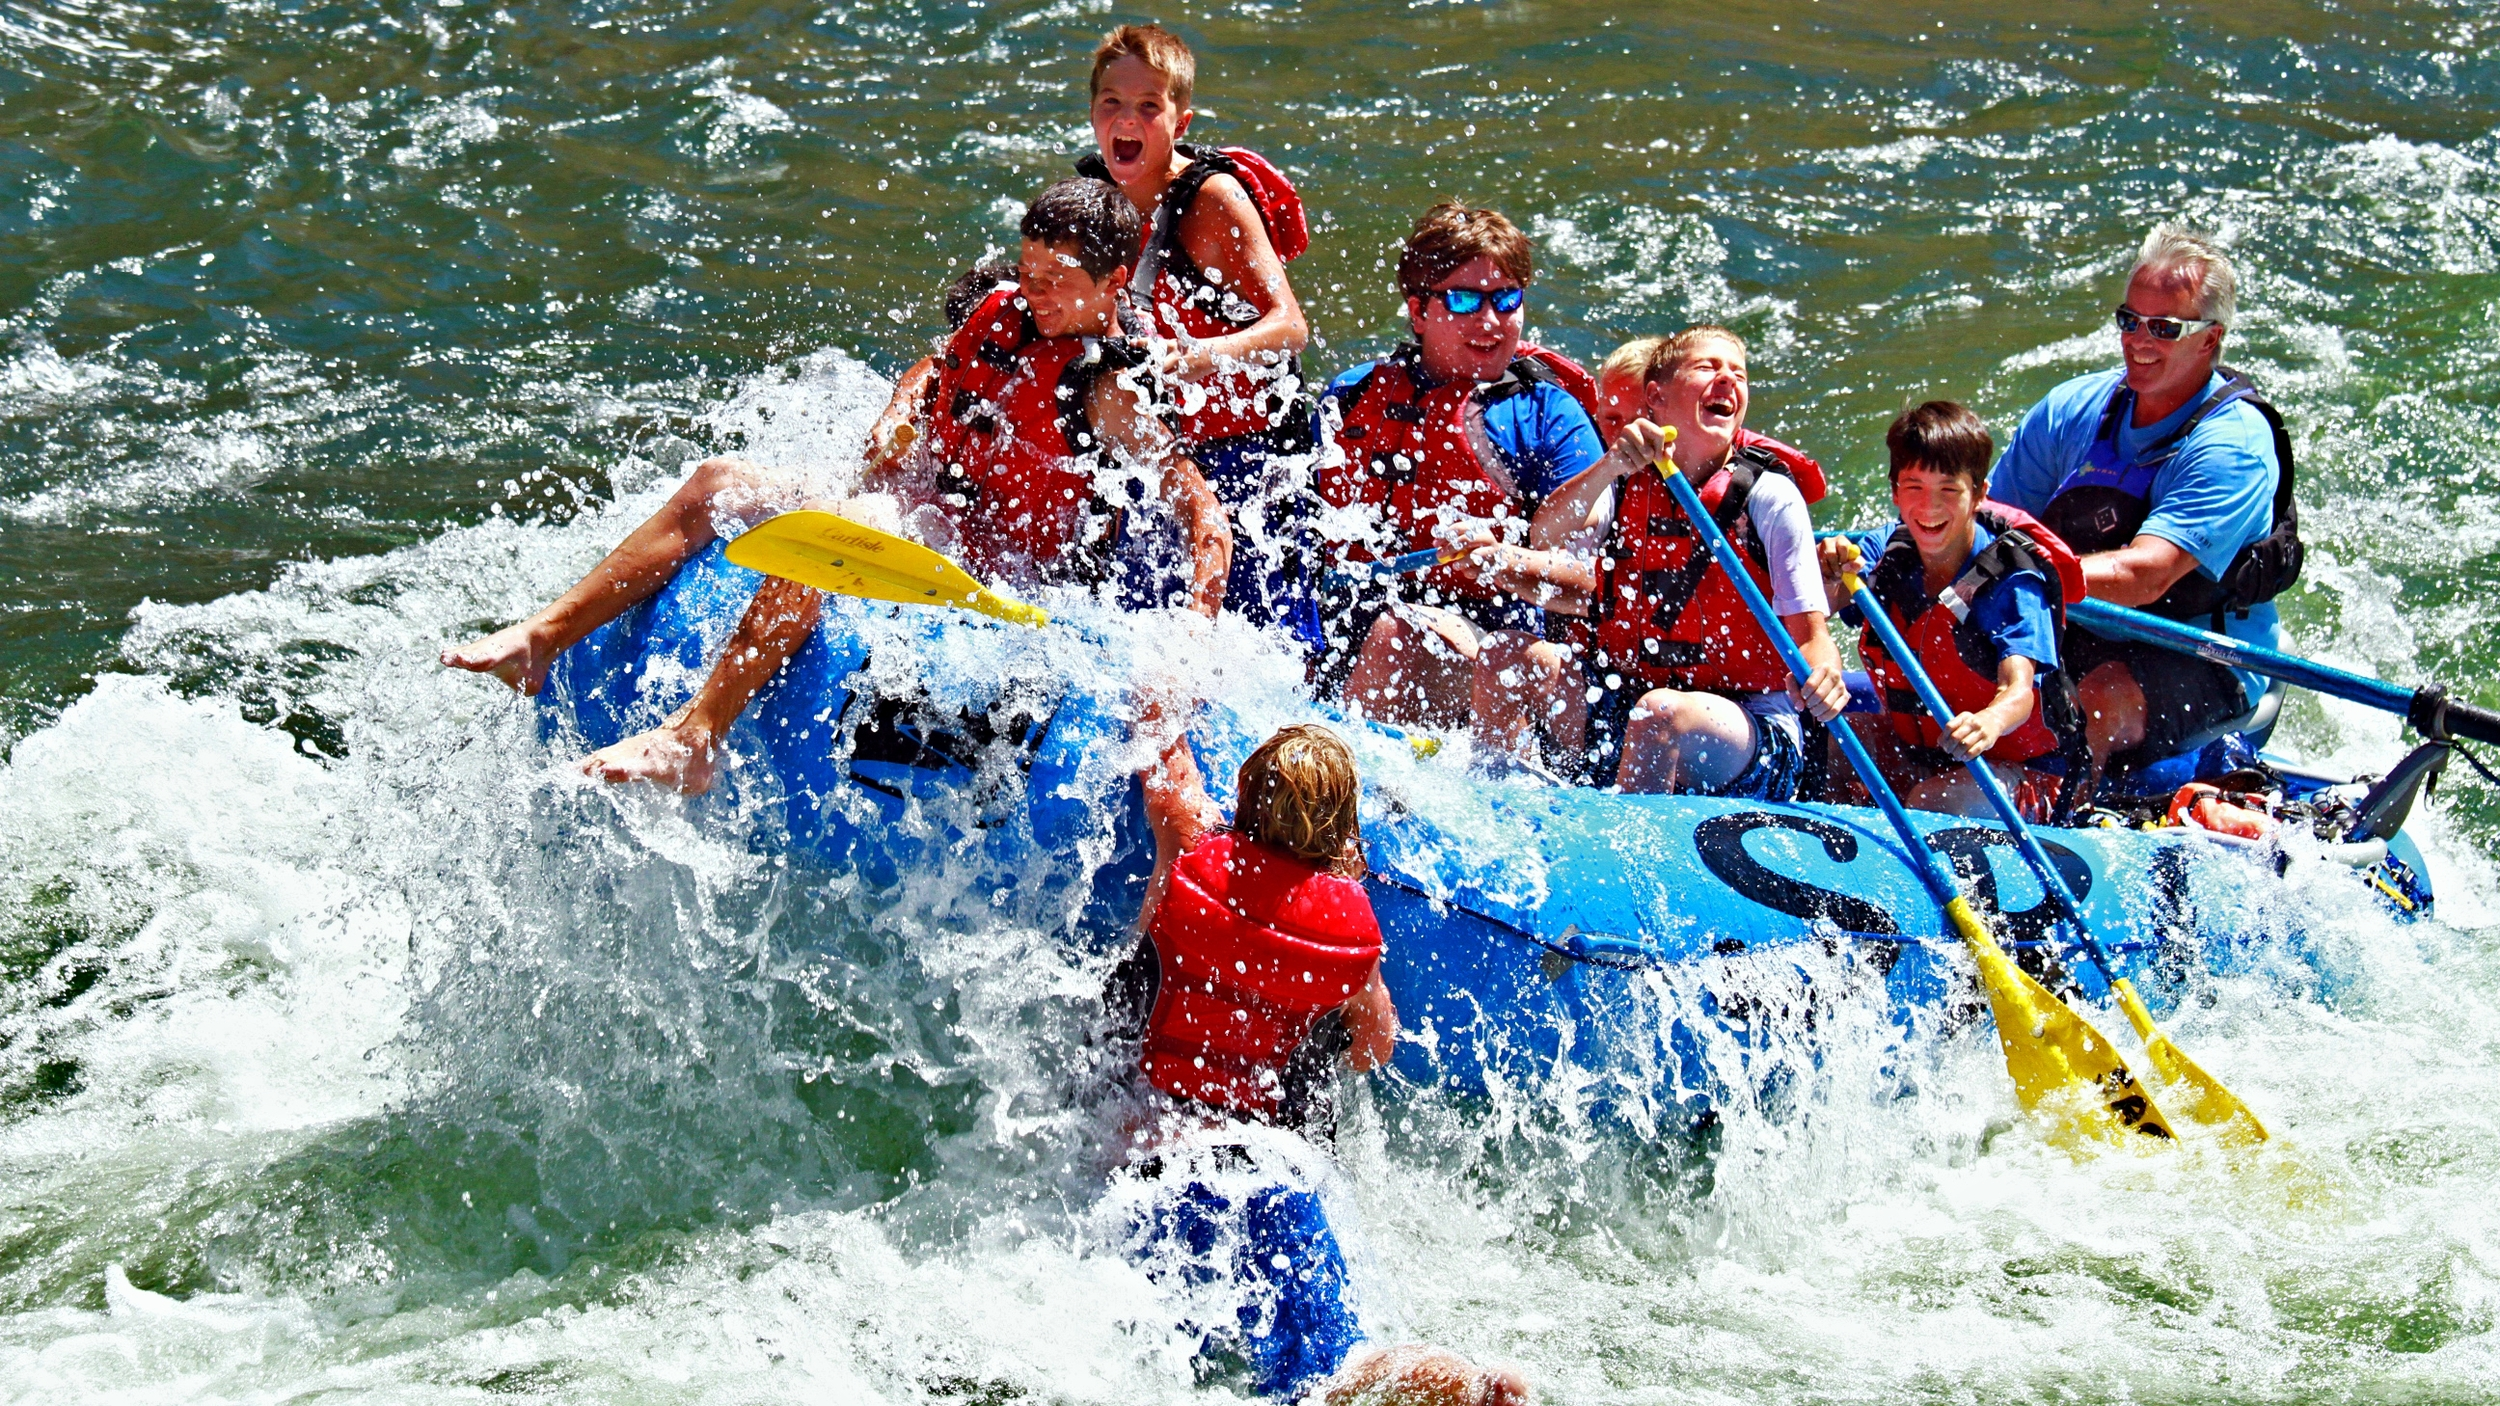 Kid getting a big ride and short swim when rafting the Salmon river near Riggins